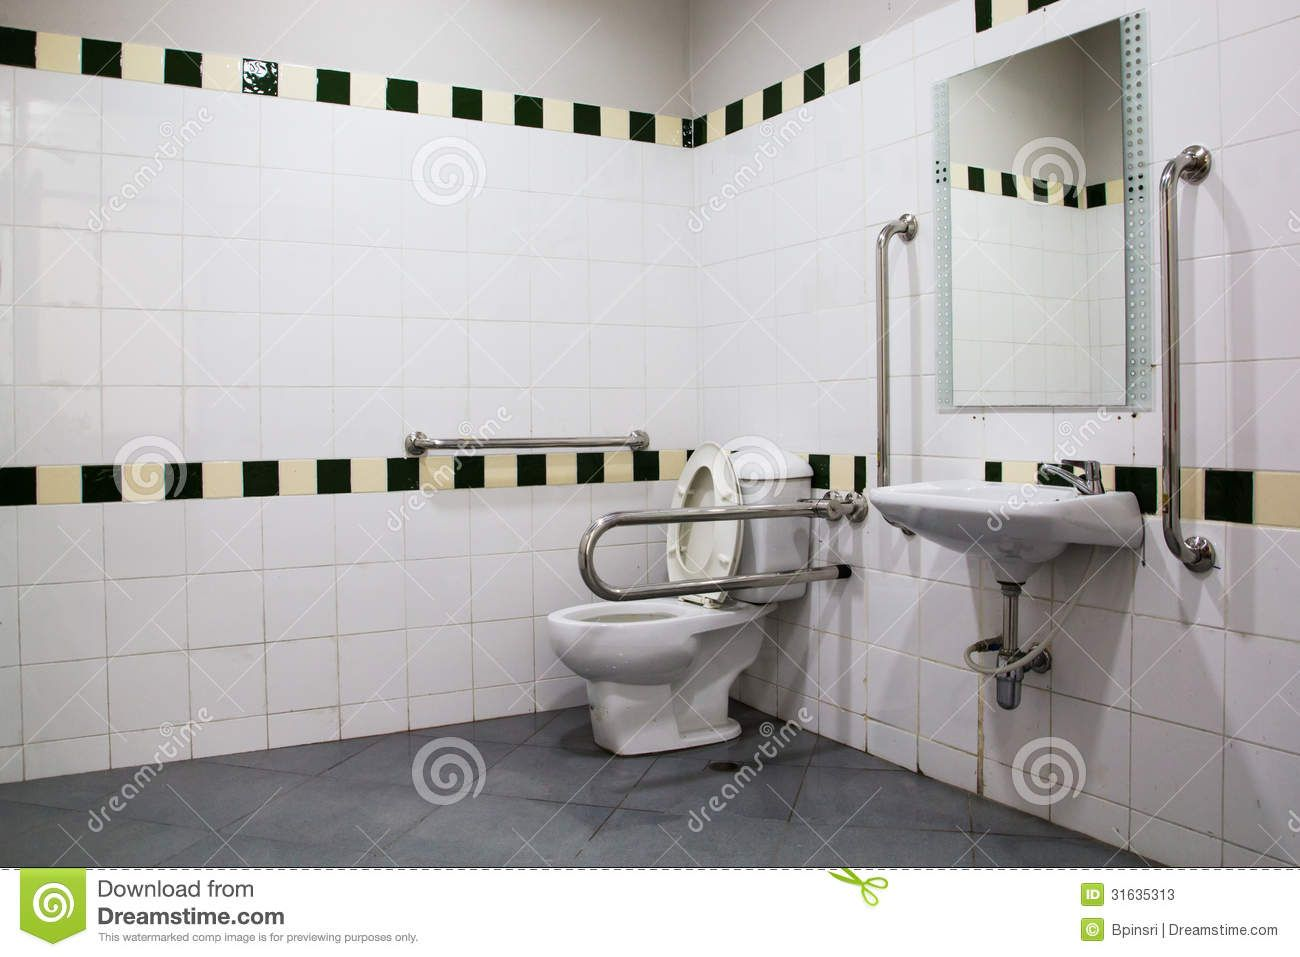 handicap grab bar placement in bathrooms | Stock Photos: Handicap ...